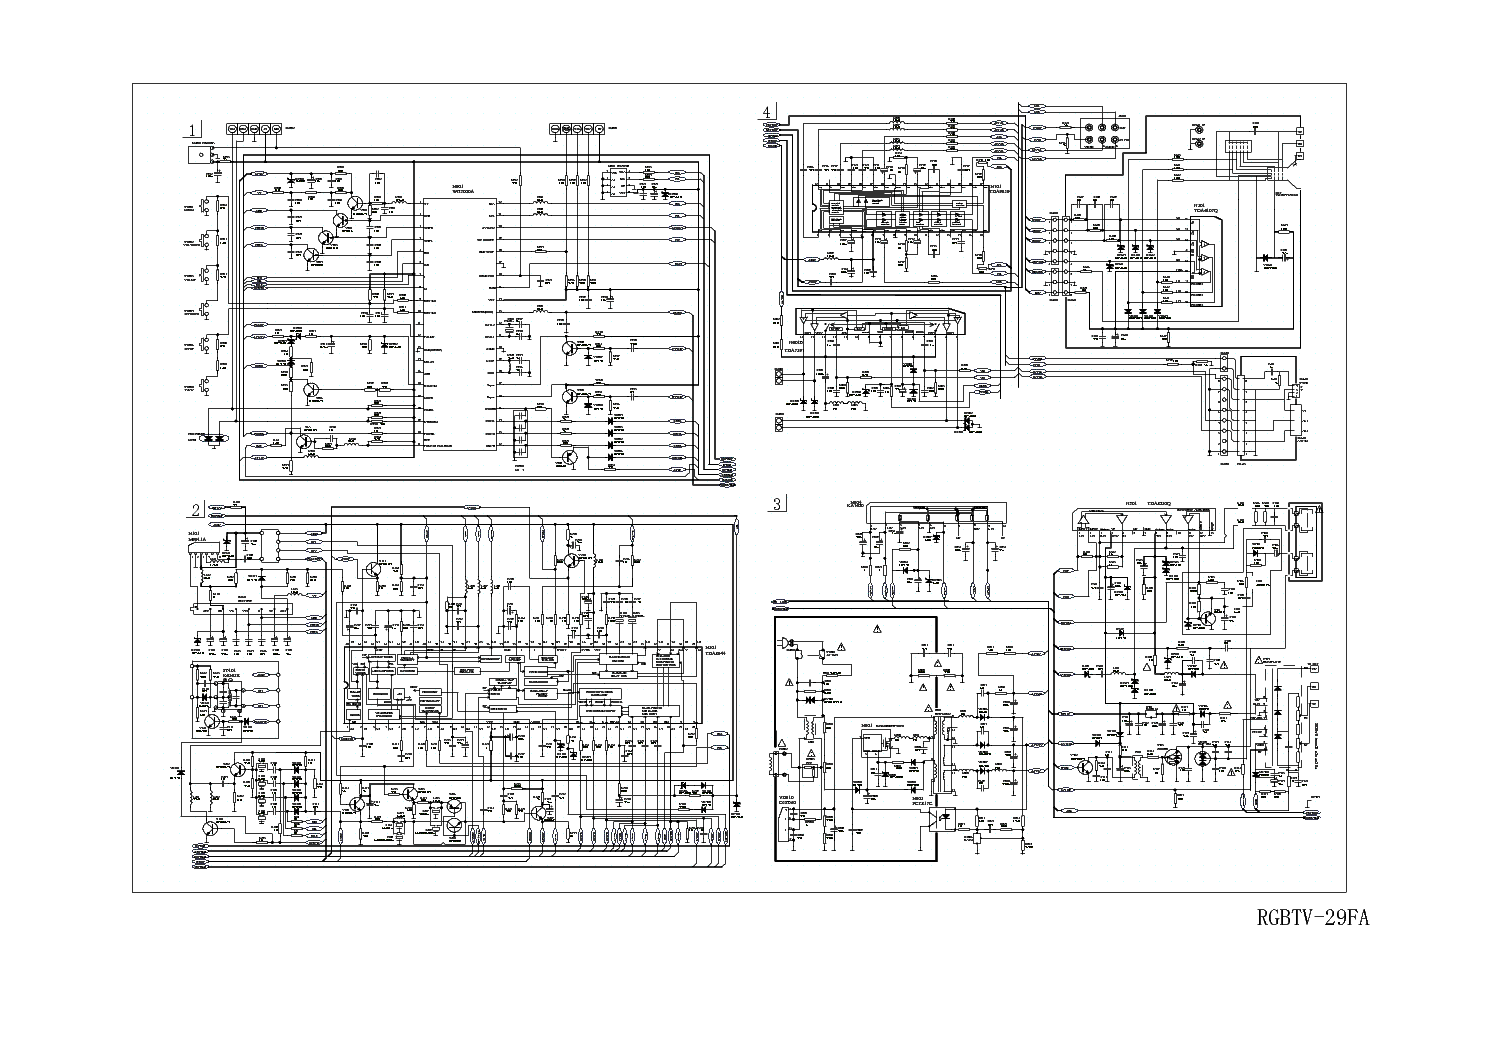 Led Tv Wiring Diagram For Receiver To Samsung Circuit Rv Water Pump 1988